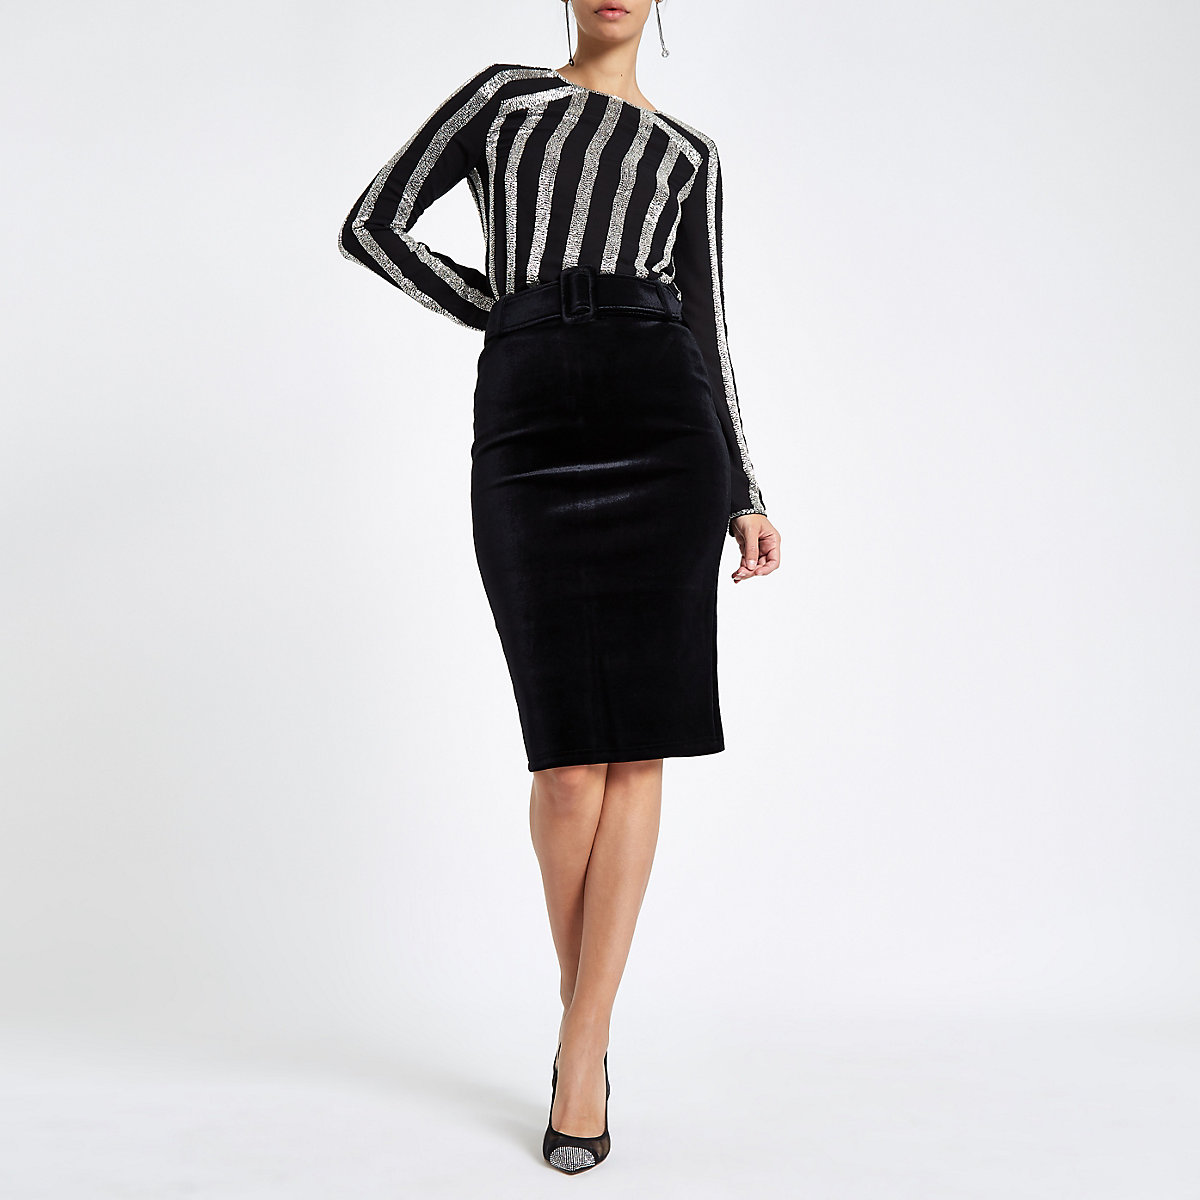 Black velvet belted pencil skirt